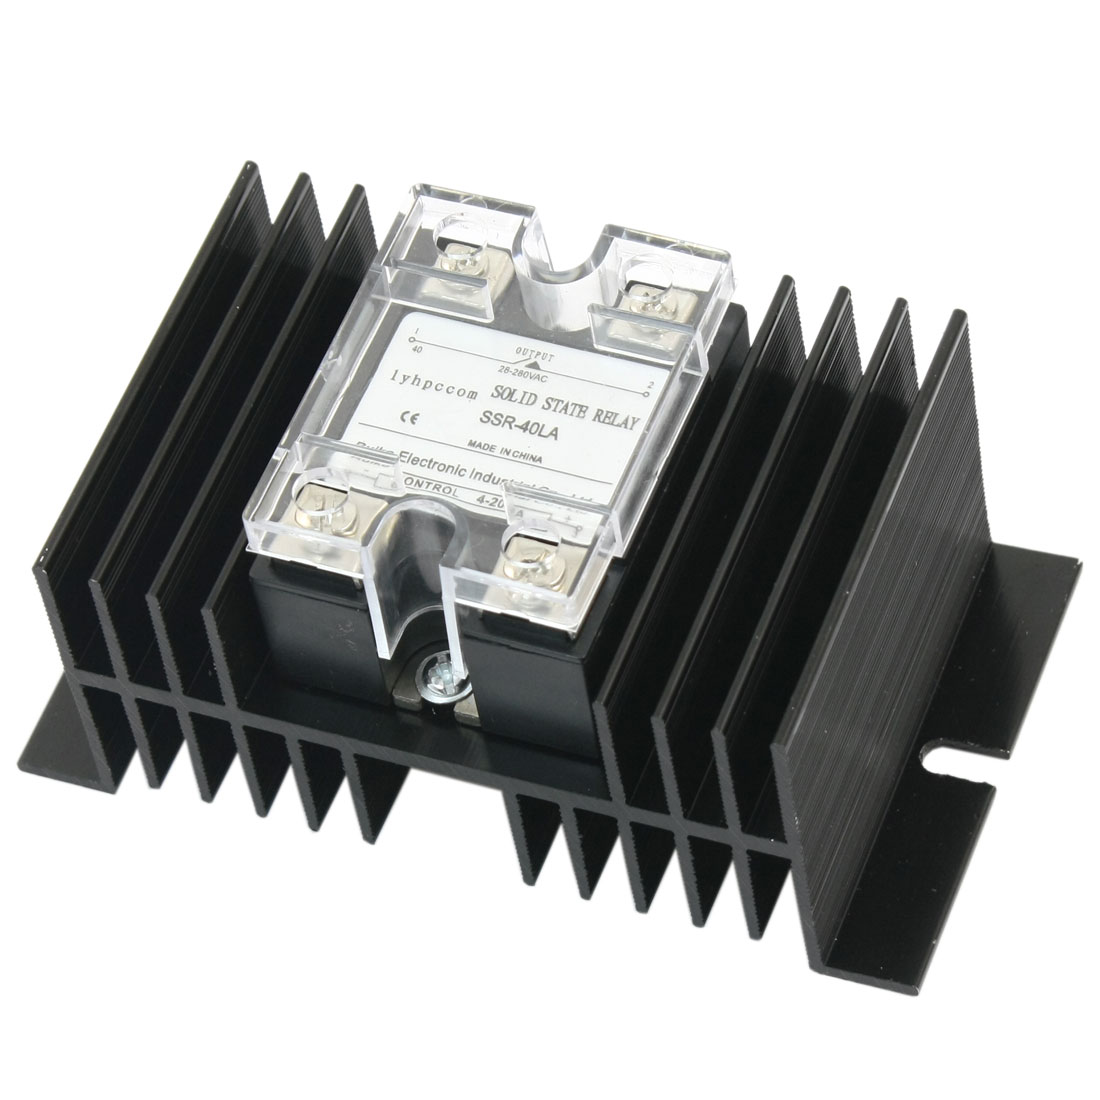 SSR-40LA 4-20mA Input AC28-280V 40A Output 4 Screw Terminal Single Phase Solid State Relay w Aluminum Heatsink